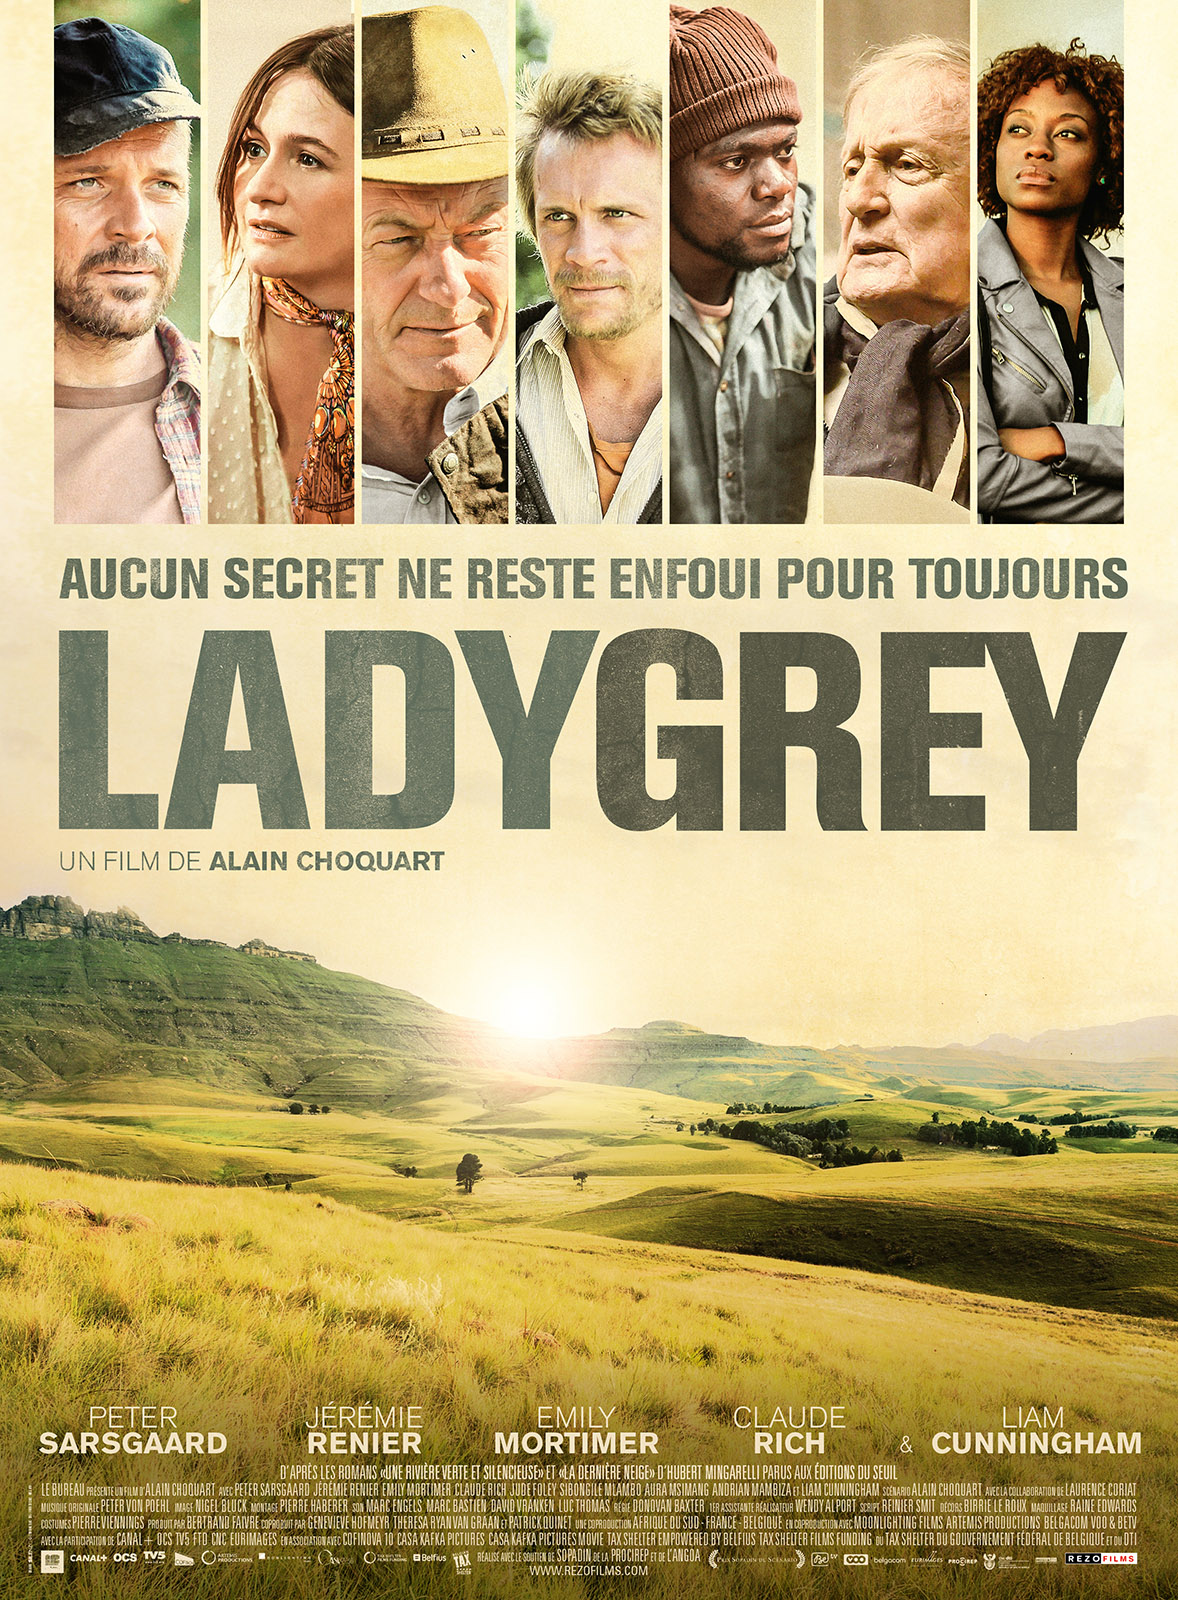 Télécharger Ladygrey HDLight 1080p TRUEFRENCH